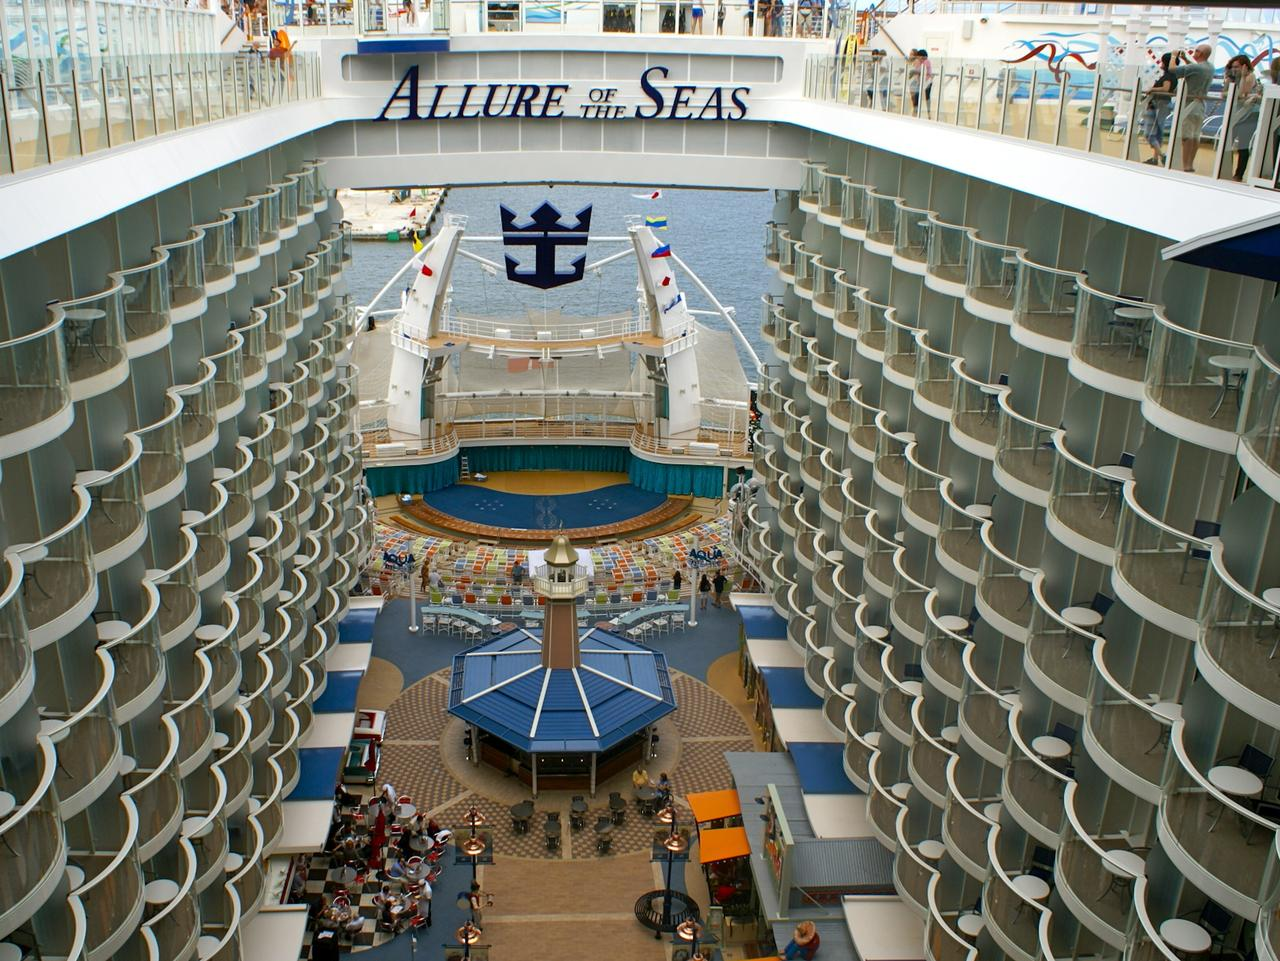 Why The Captain Of The World S Biggest Cruise Ship Allure Of The Seas Says Size Doesn T Matter Escape Com Au